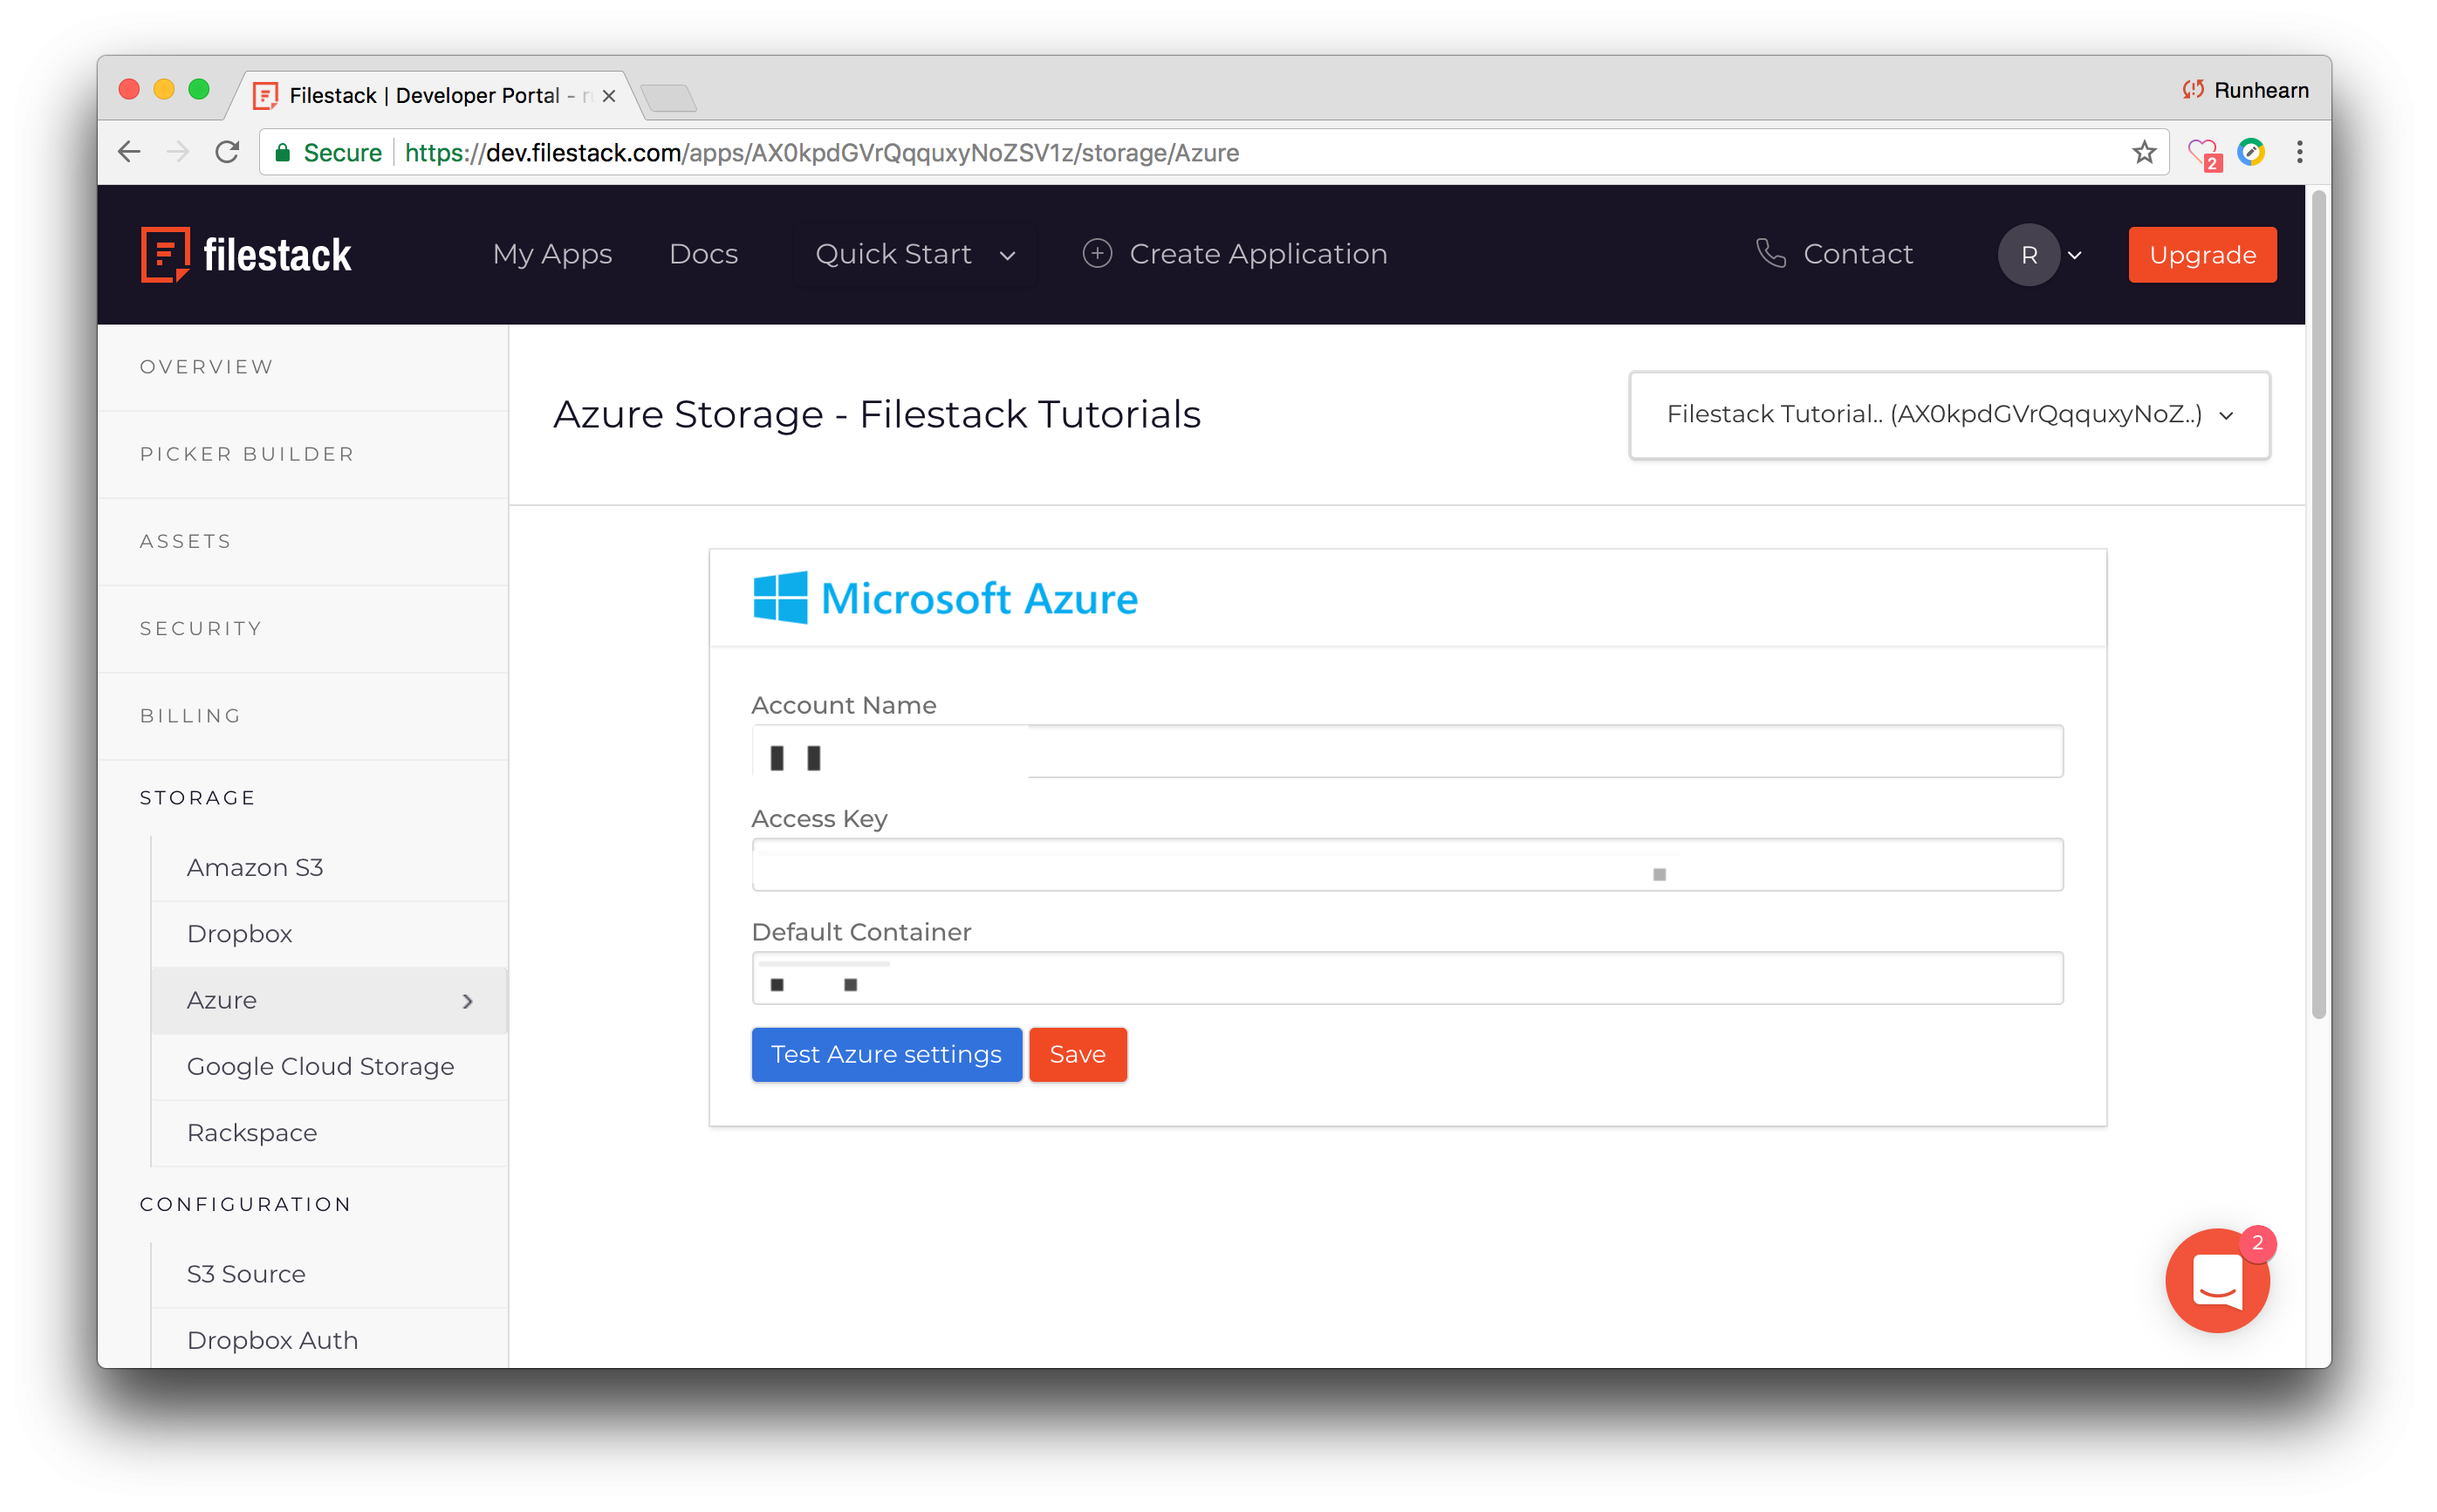 Screenshot showing the Azure section of the Filestack portal